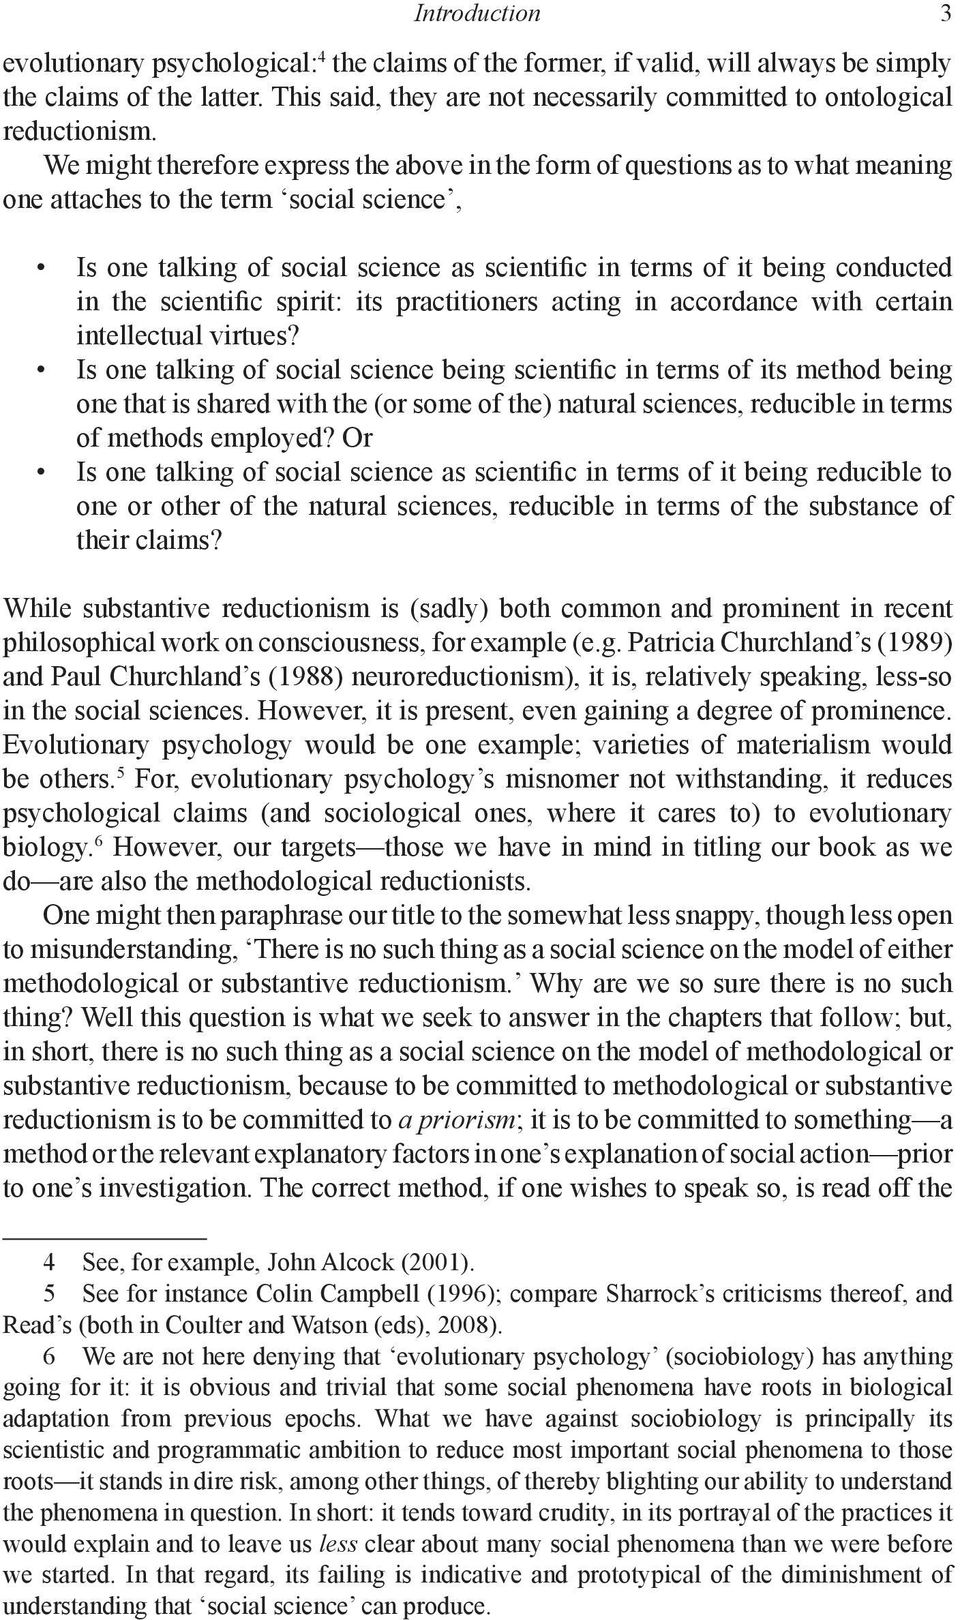 We might therefore express the above in the form of questions as to what meaning one attaches to the term social science, Is one talking of social science as scientific in terms of it being conducted